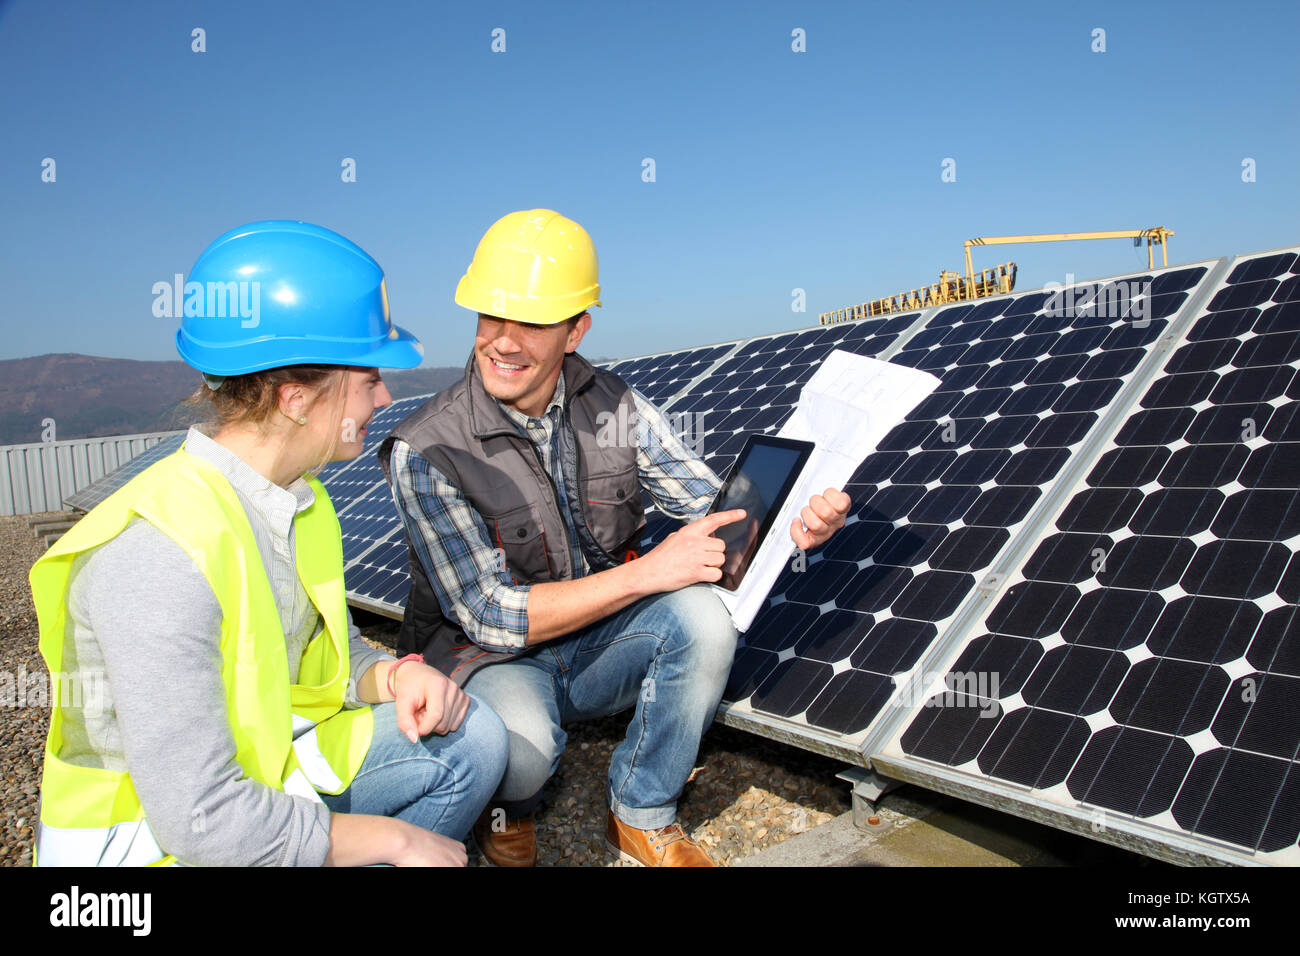 Man showing solar panels technology to student girl - Stock Image